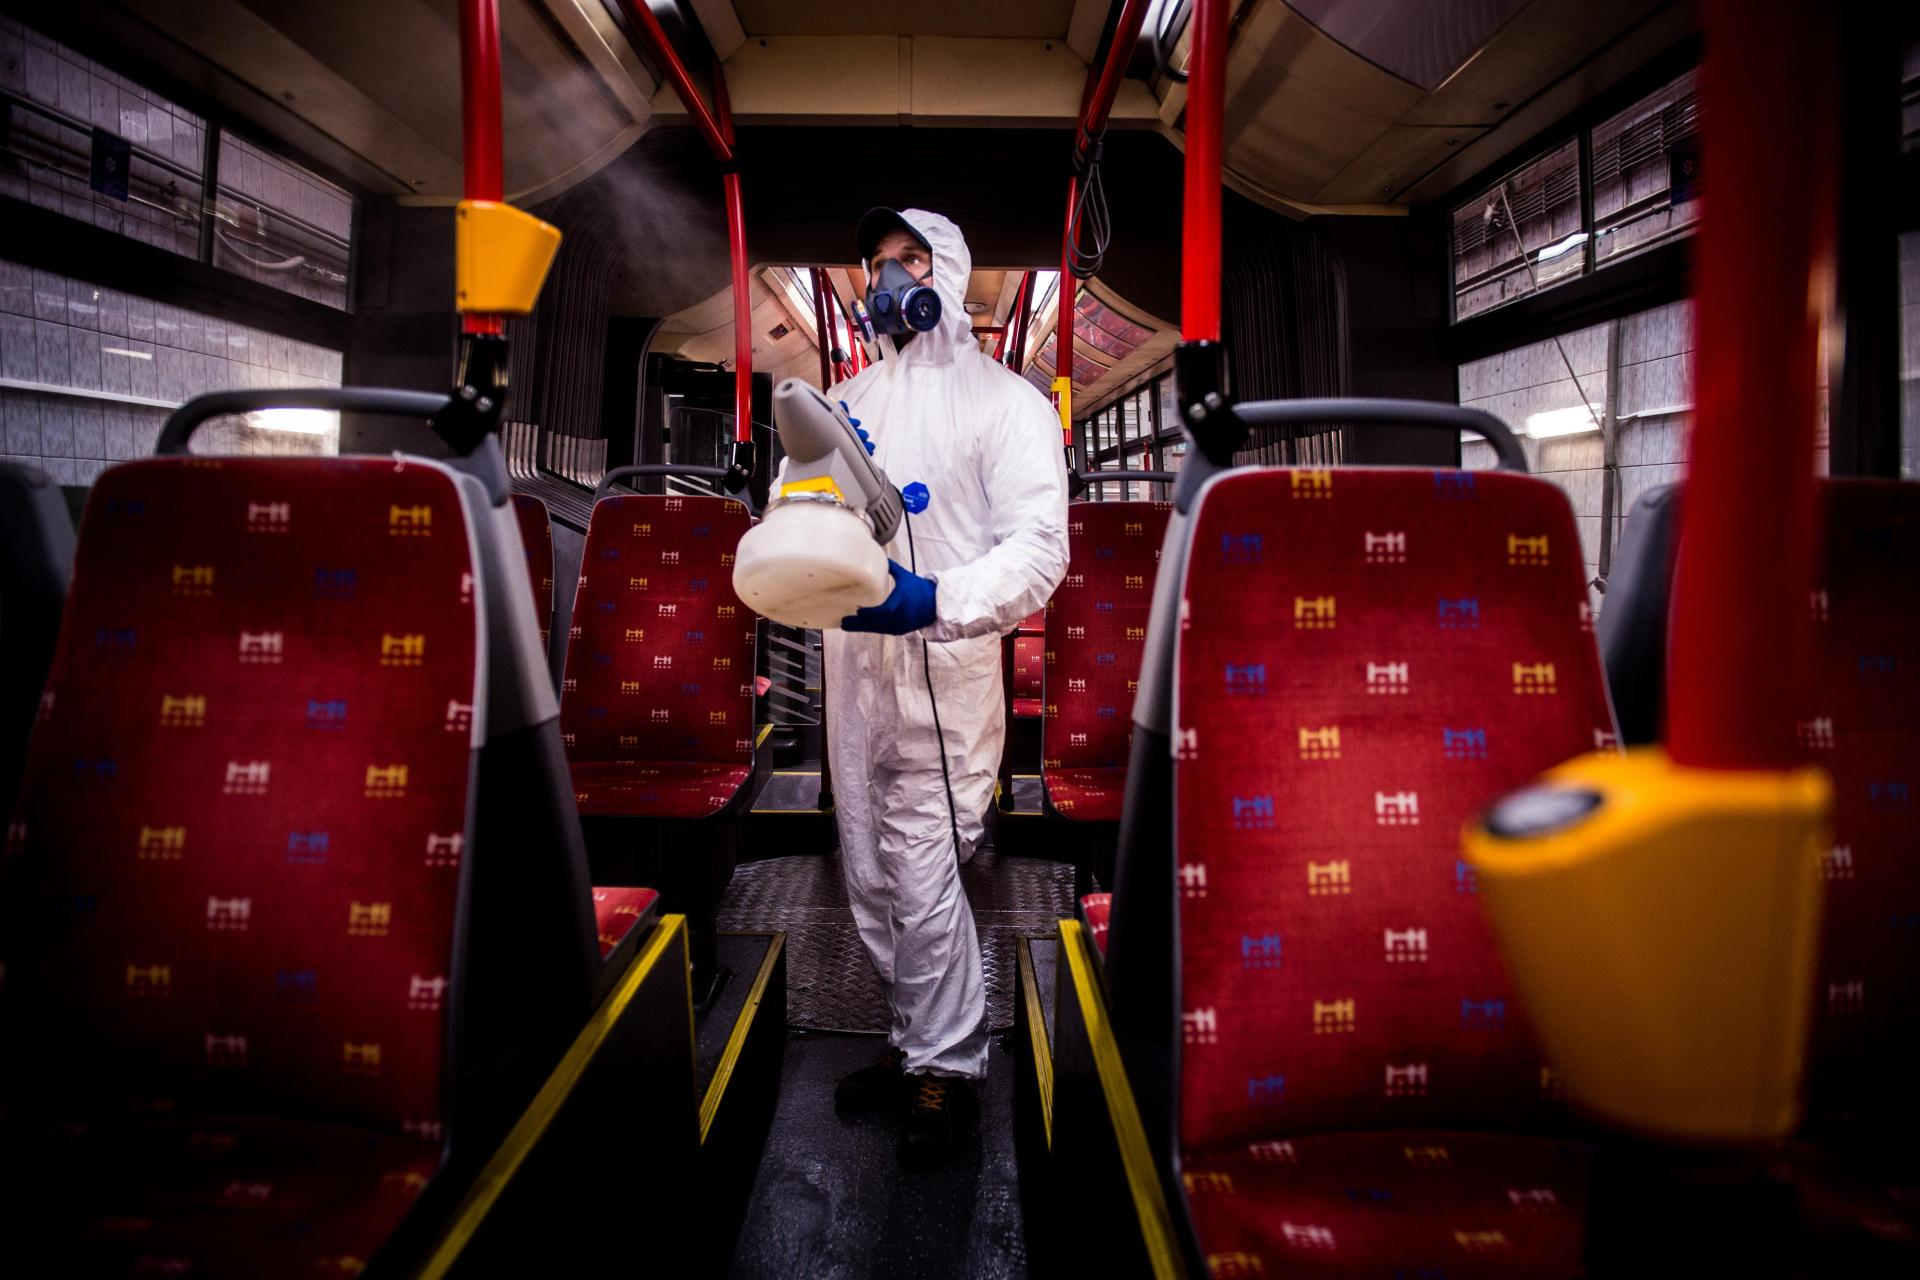 A worker wearing protective clothes disinfects an interior of a public bus in a bus-wash station in Bratislava, Slovakia. Photo: AFP